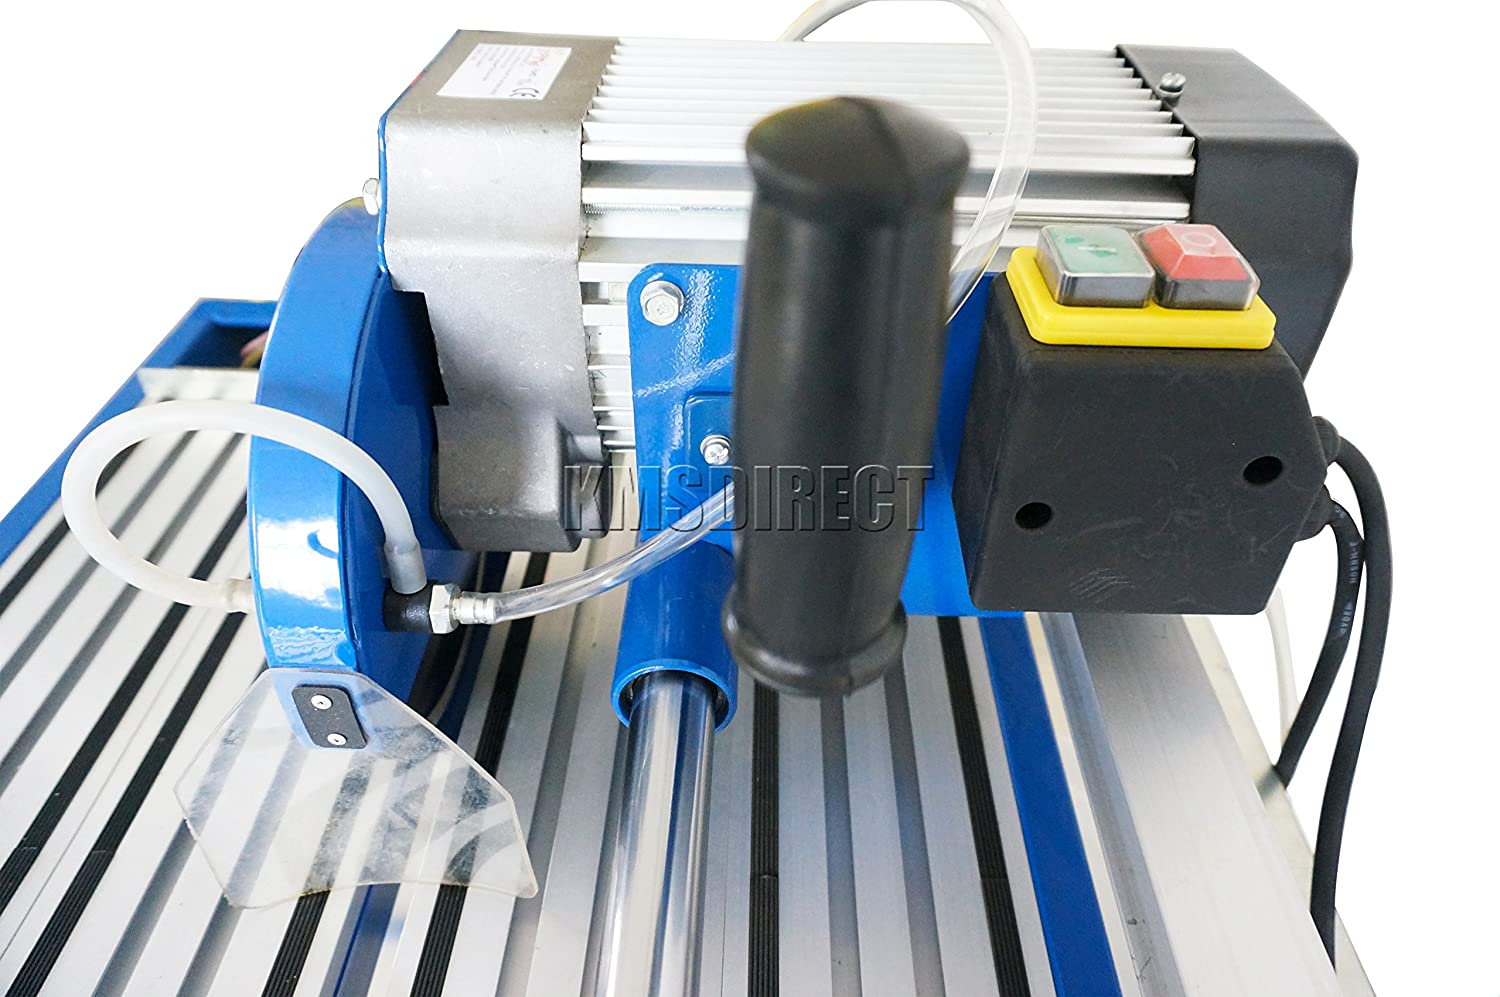 Foxhunter electric ceramic tile cutter professional cutting foxhunter electric ceramic tile cutter professional cutting machine 1250w motor sliding wet saw 850mm with table blue amazon diy tools dailygadgetfo Images